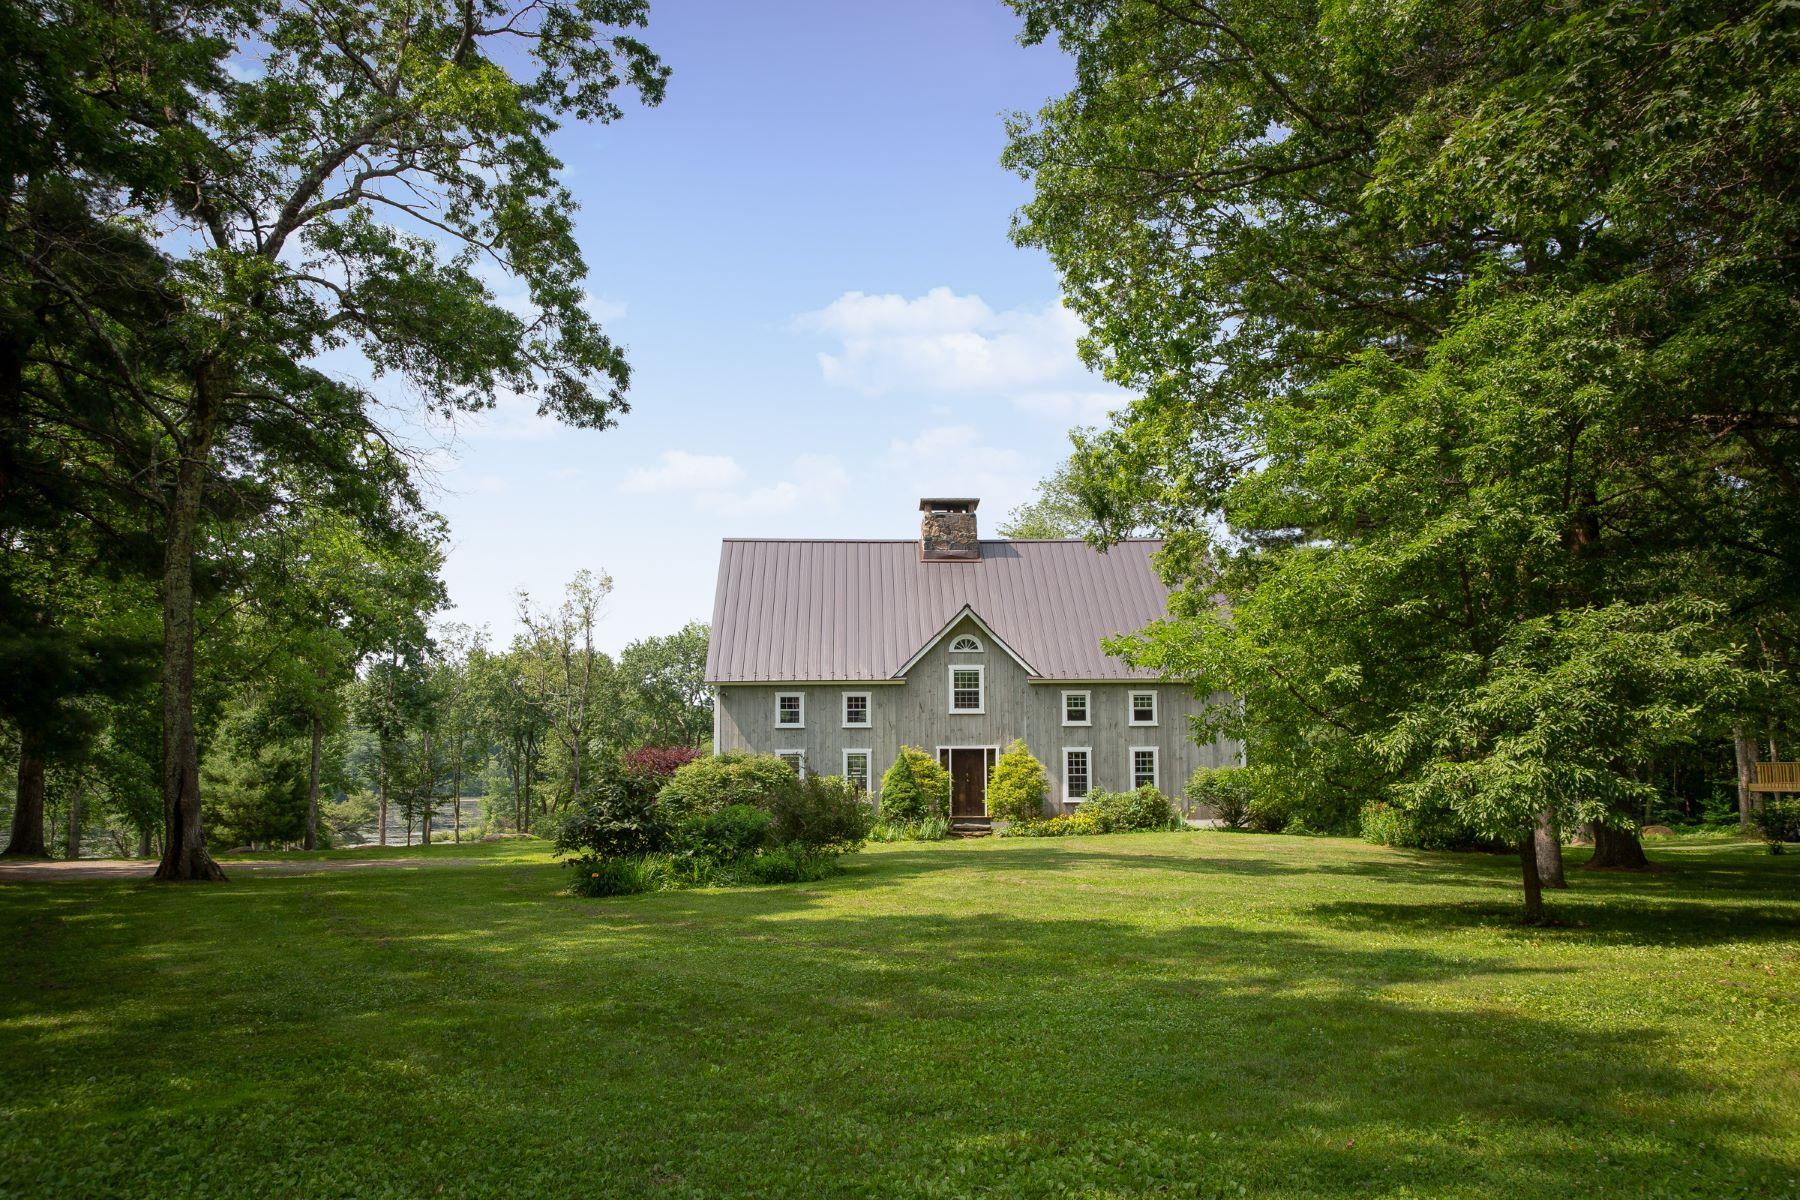 Single Family Homes のために 売買 アット On Fiddlers Pond 335 Brick School Road, Warren, コネチカット 06754 アメリカ